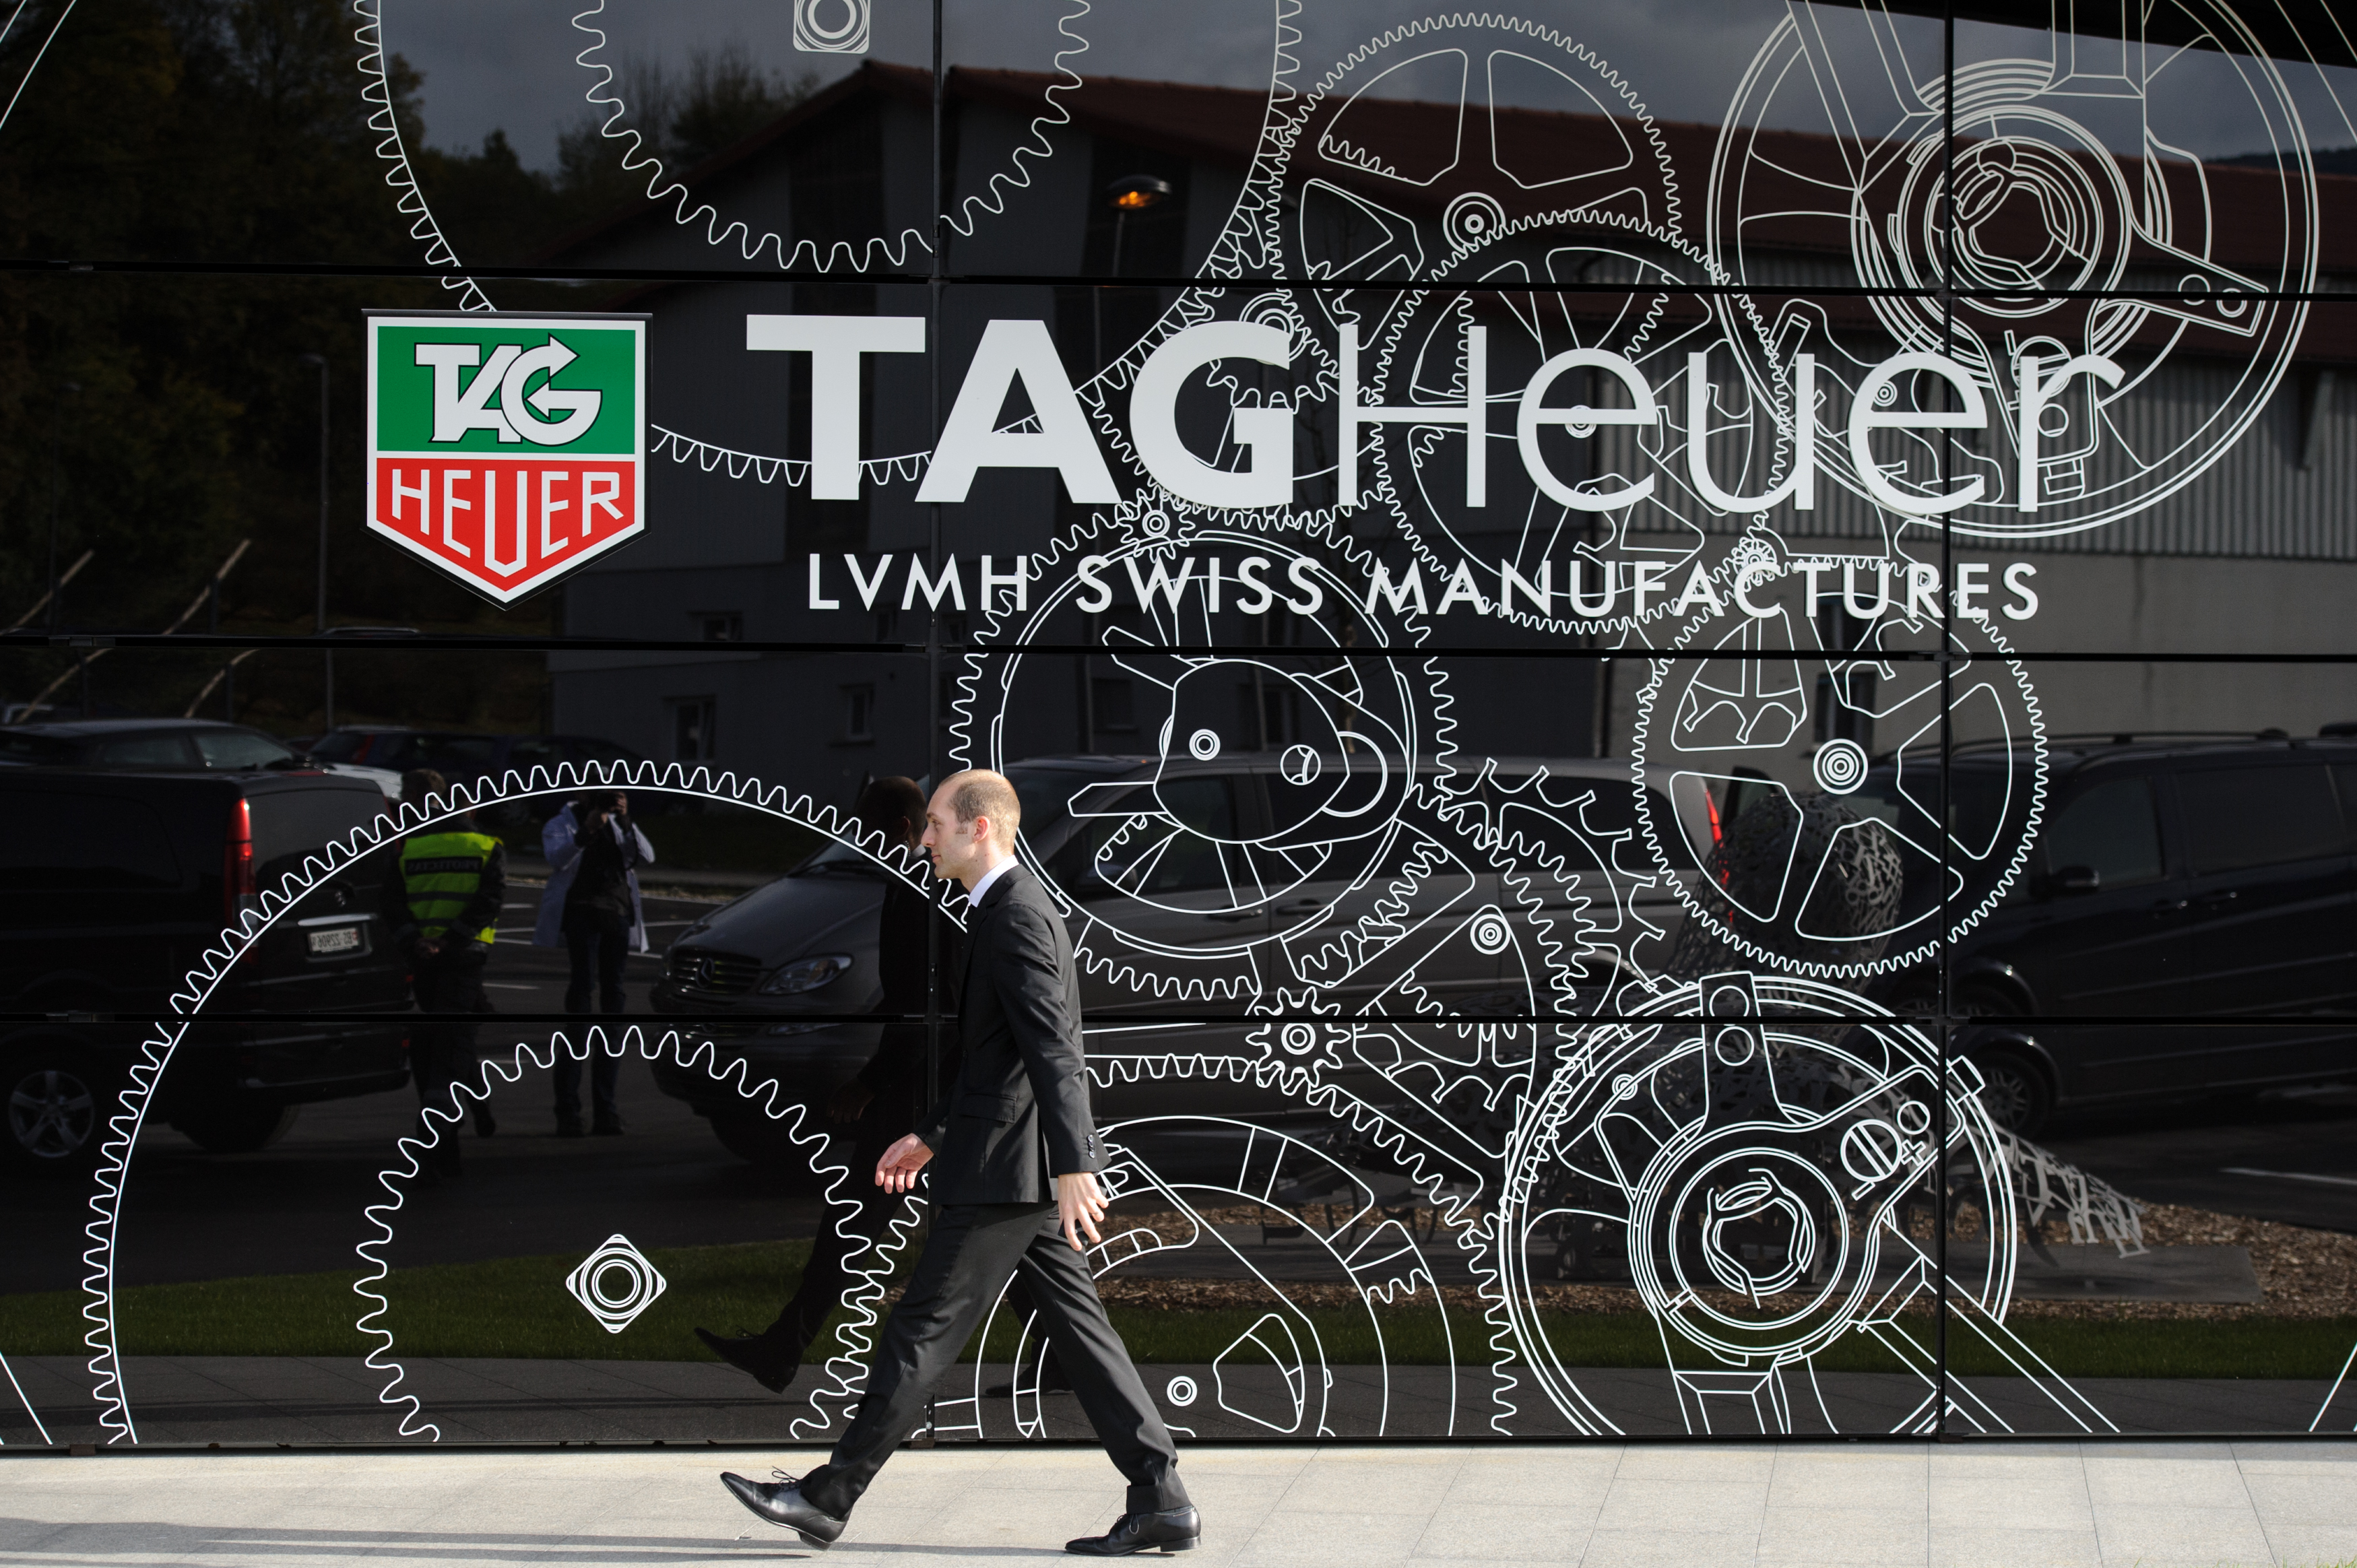 Tag Heuer Factory